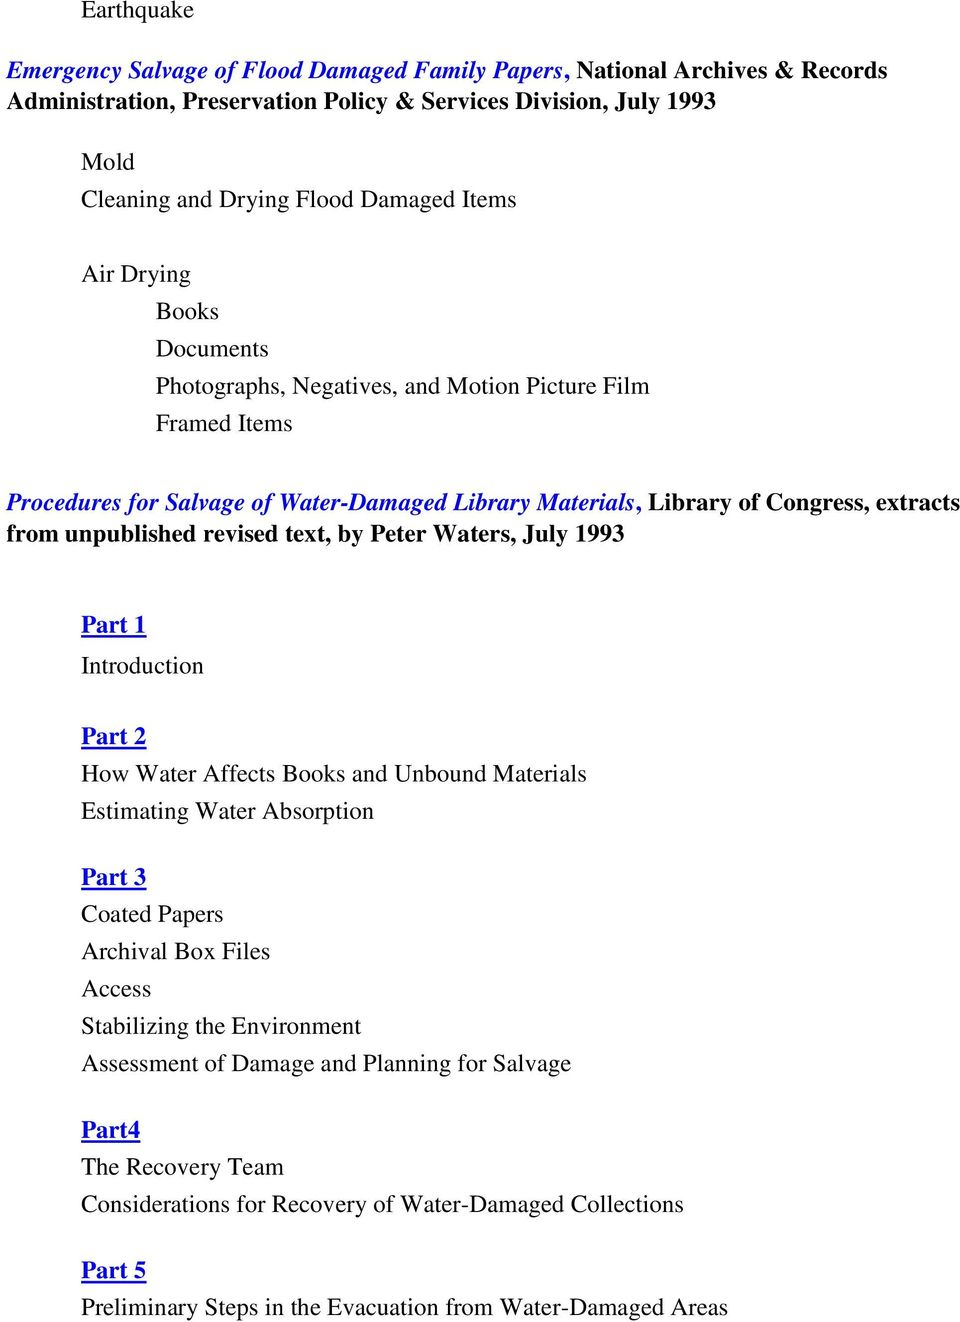 revised text, by Peter Waters, July 1993 Part 1 Introduction Part 2 How Water Affects Books and Unbound Materials Estimating Water Absorption Part 3 Coated Papers Archival Box Files Access